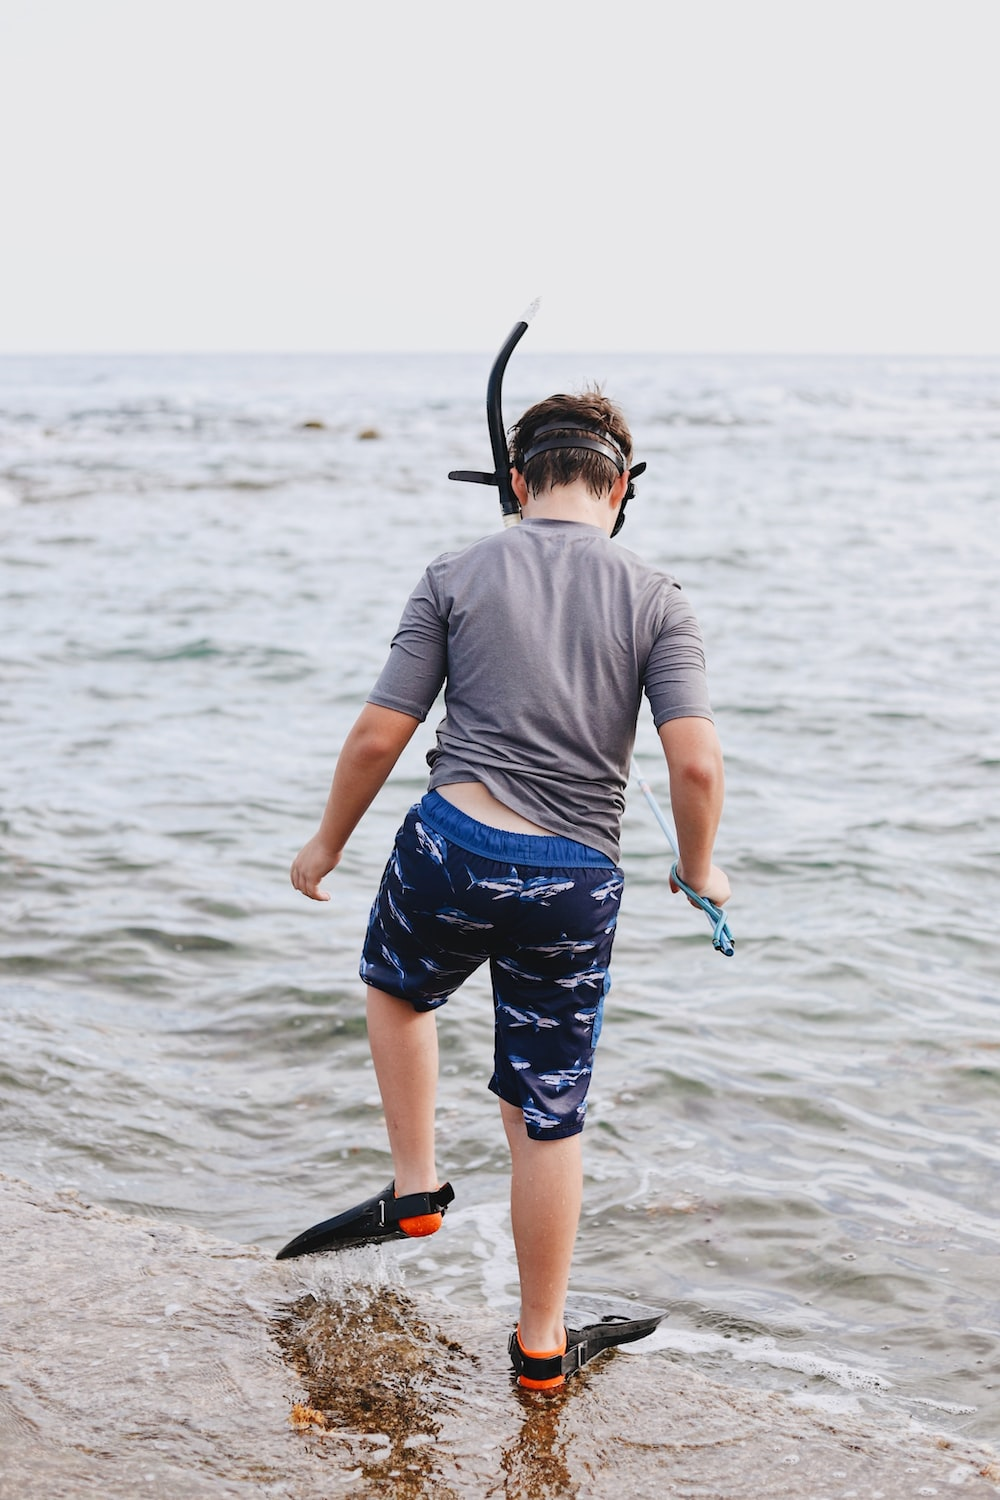 toddler standing outdoors near body of water